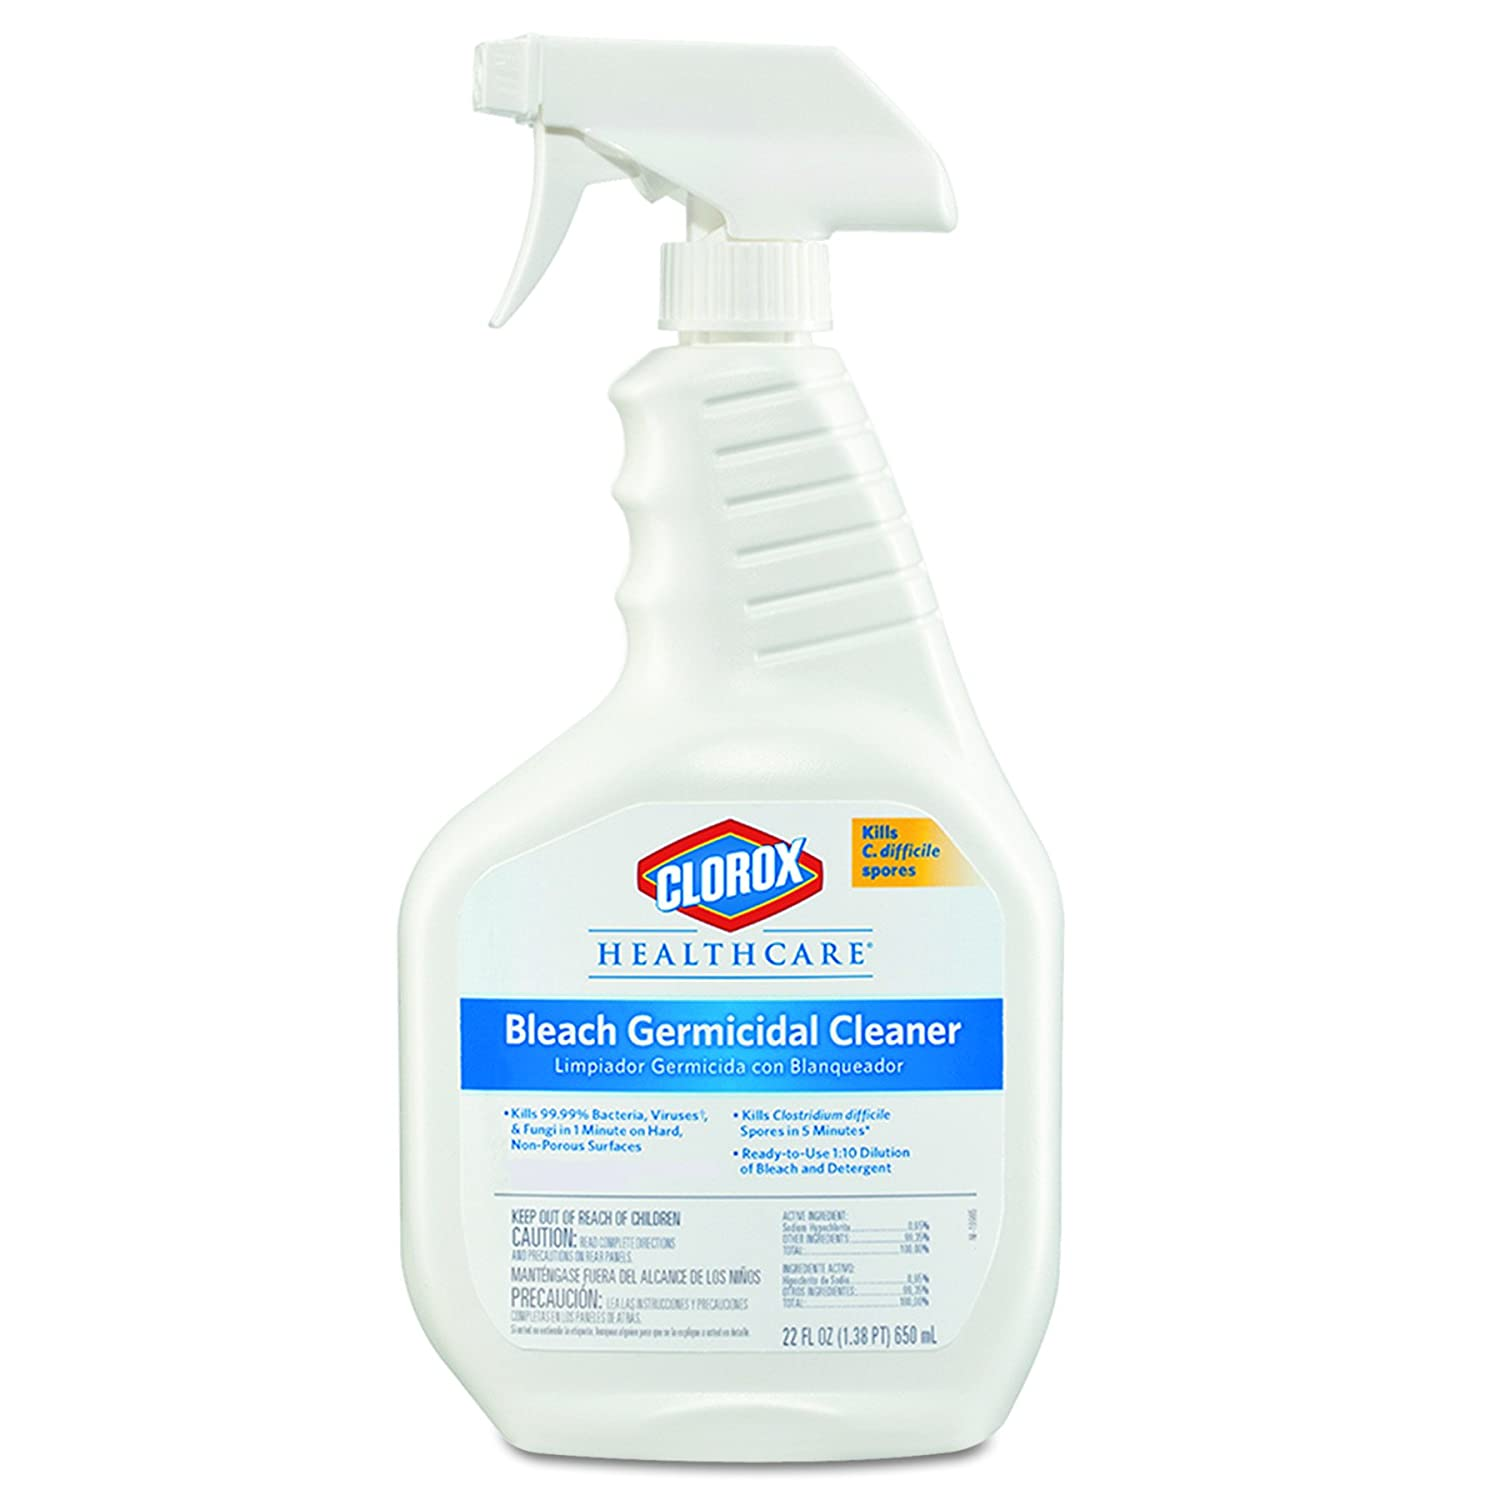 Clorox Healthcare 68967CT Bleach Germicidal Cleaner, 22oz Spray Bottle (Case of 8) CLOROX SALES CO. CLO68967CT